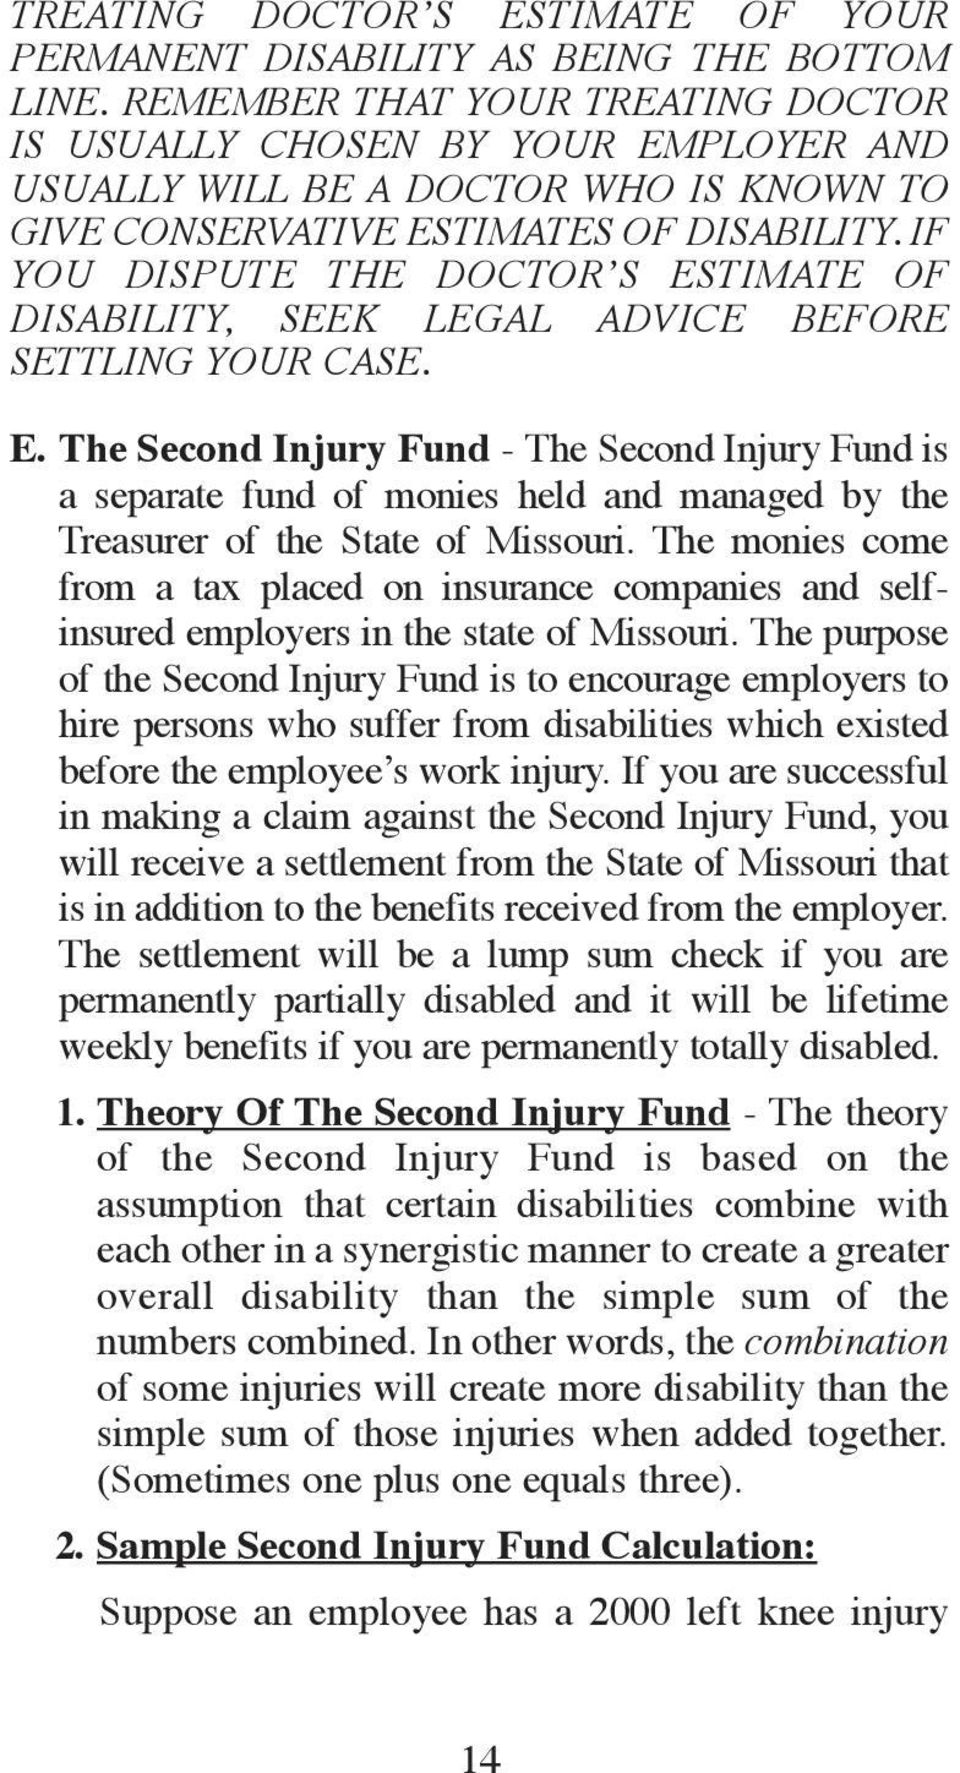 IF YOU DISPUTE THE DOCTOR S ESTIMATE OF DISABILITY, SEEK LEGAL ADVICE BEFORE SETTLING YOUR CASE. E. The Second Injury Fund - The Second Injury Fund is a separate fund of monies held and managed by the Treasurer of the State of Missouri.